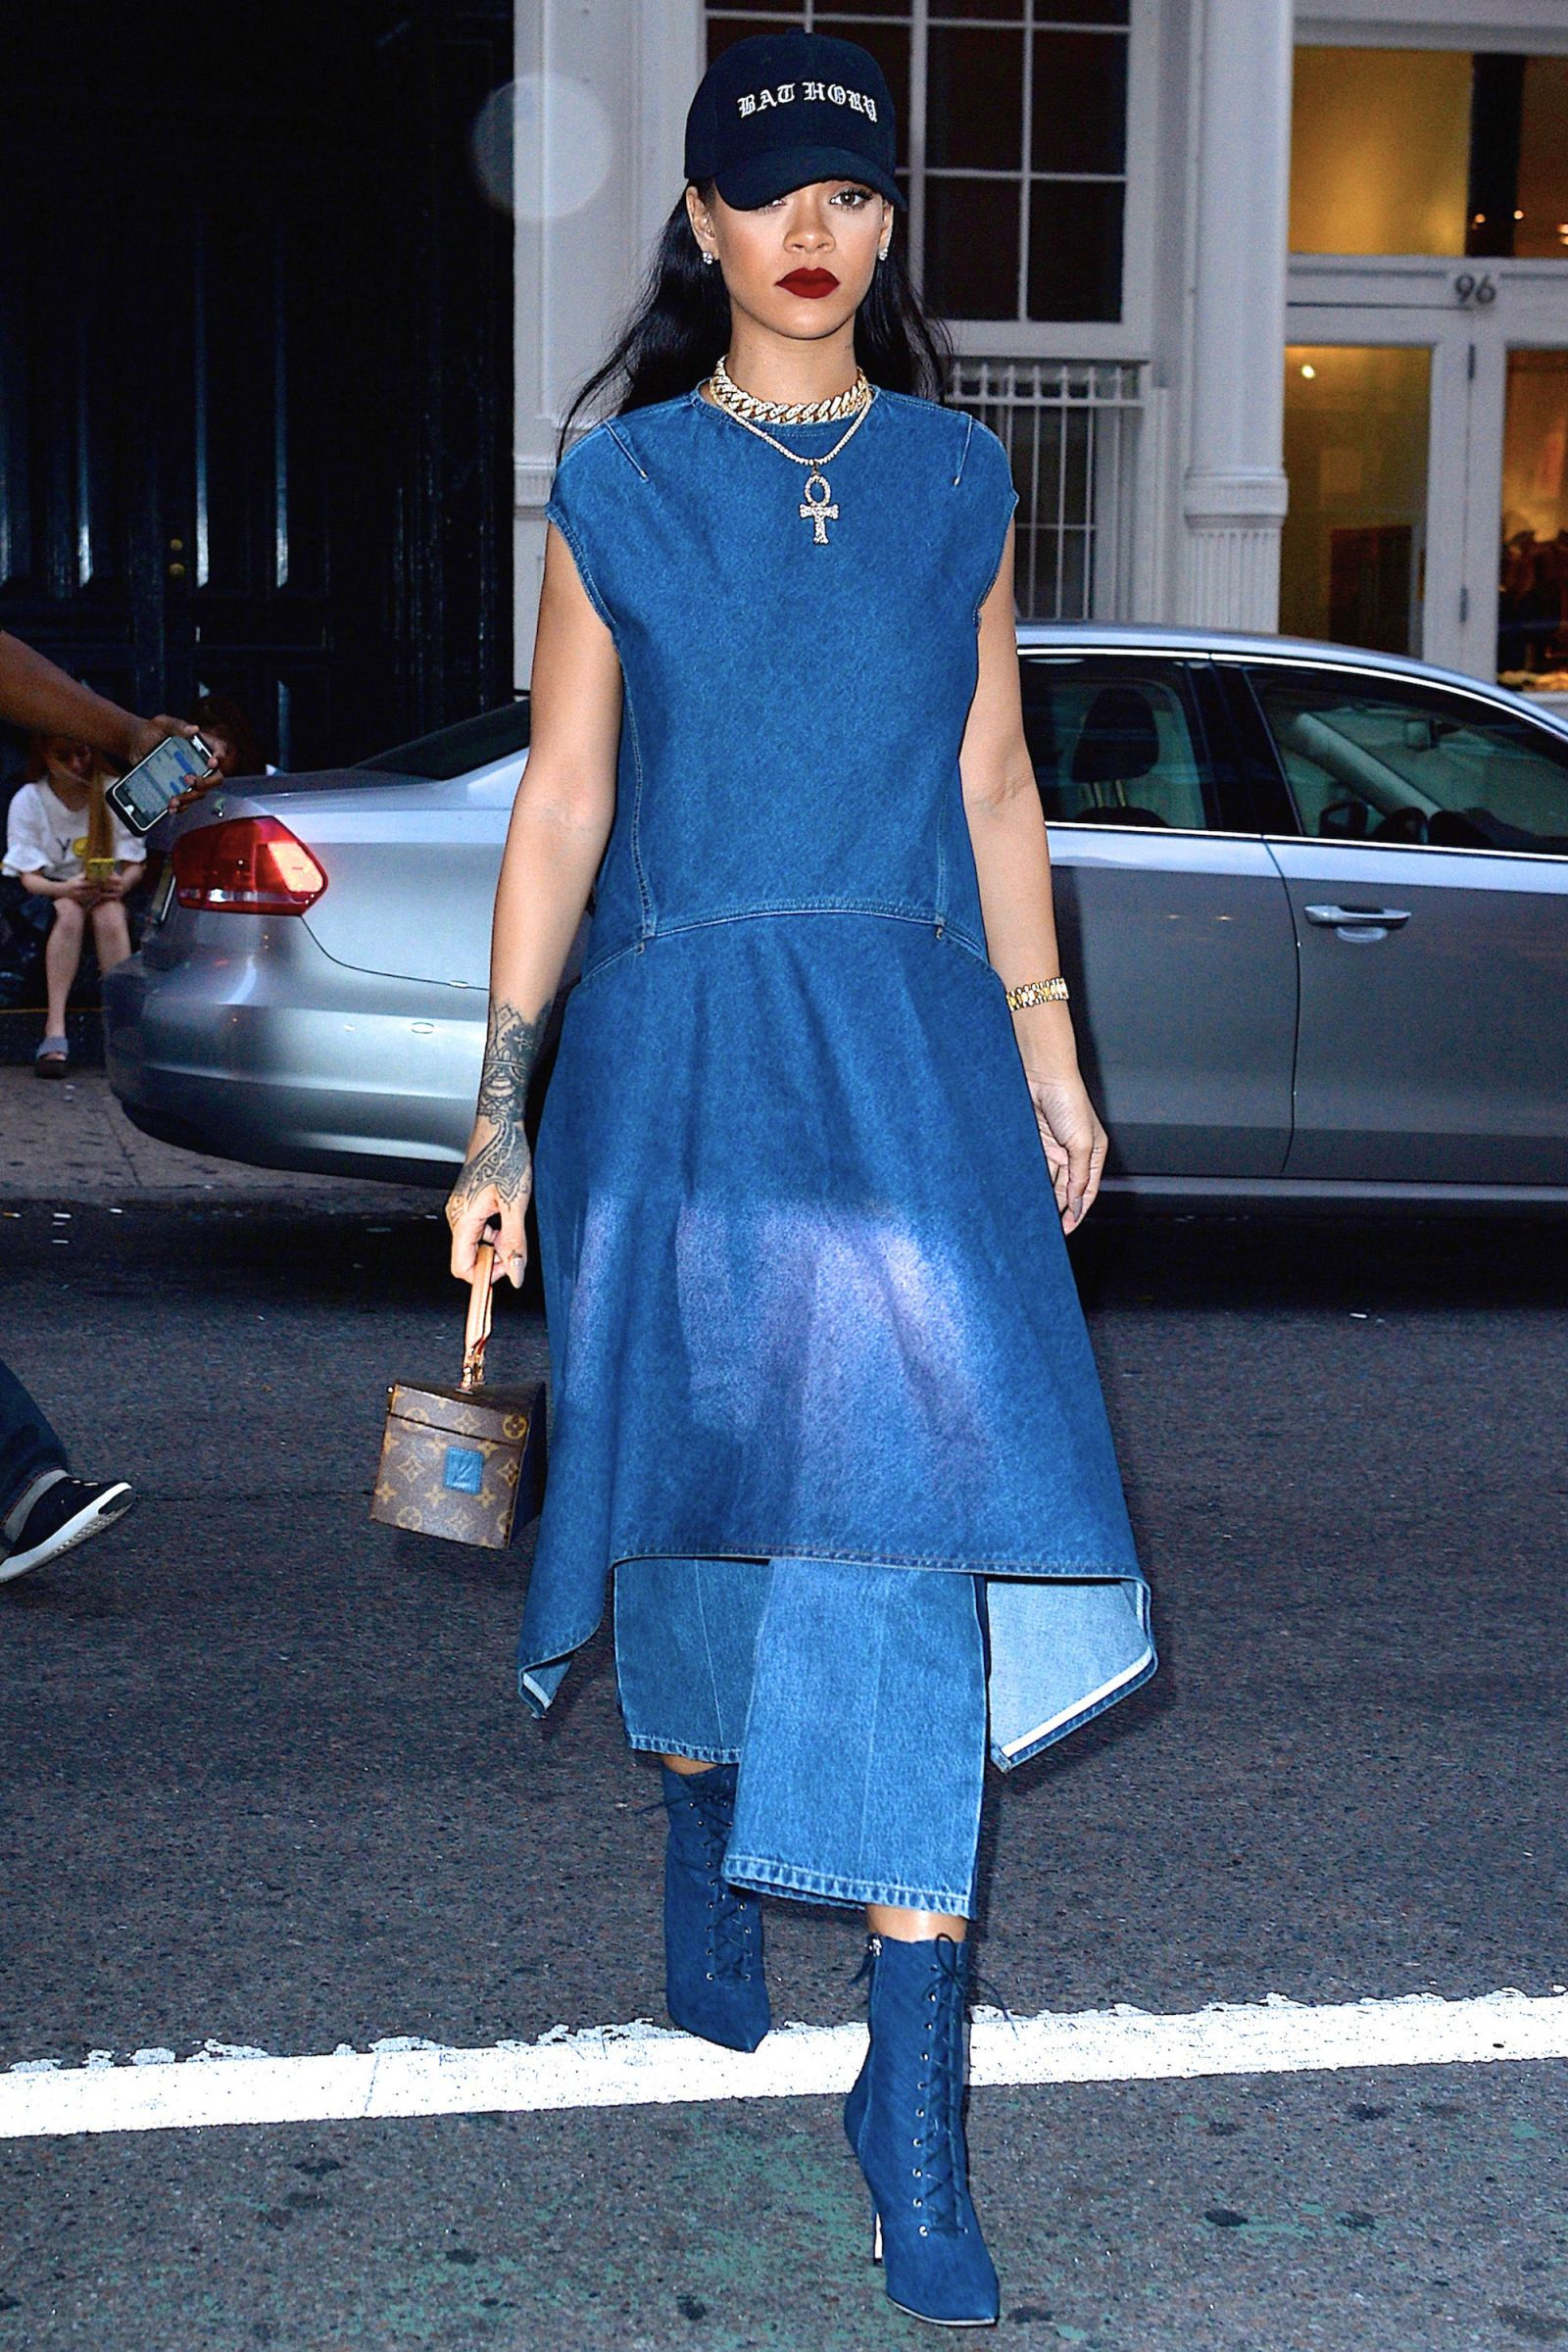 Rihanna 39 S Head To Toe Metallic Look Is Perfect For A Night